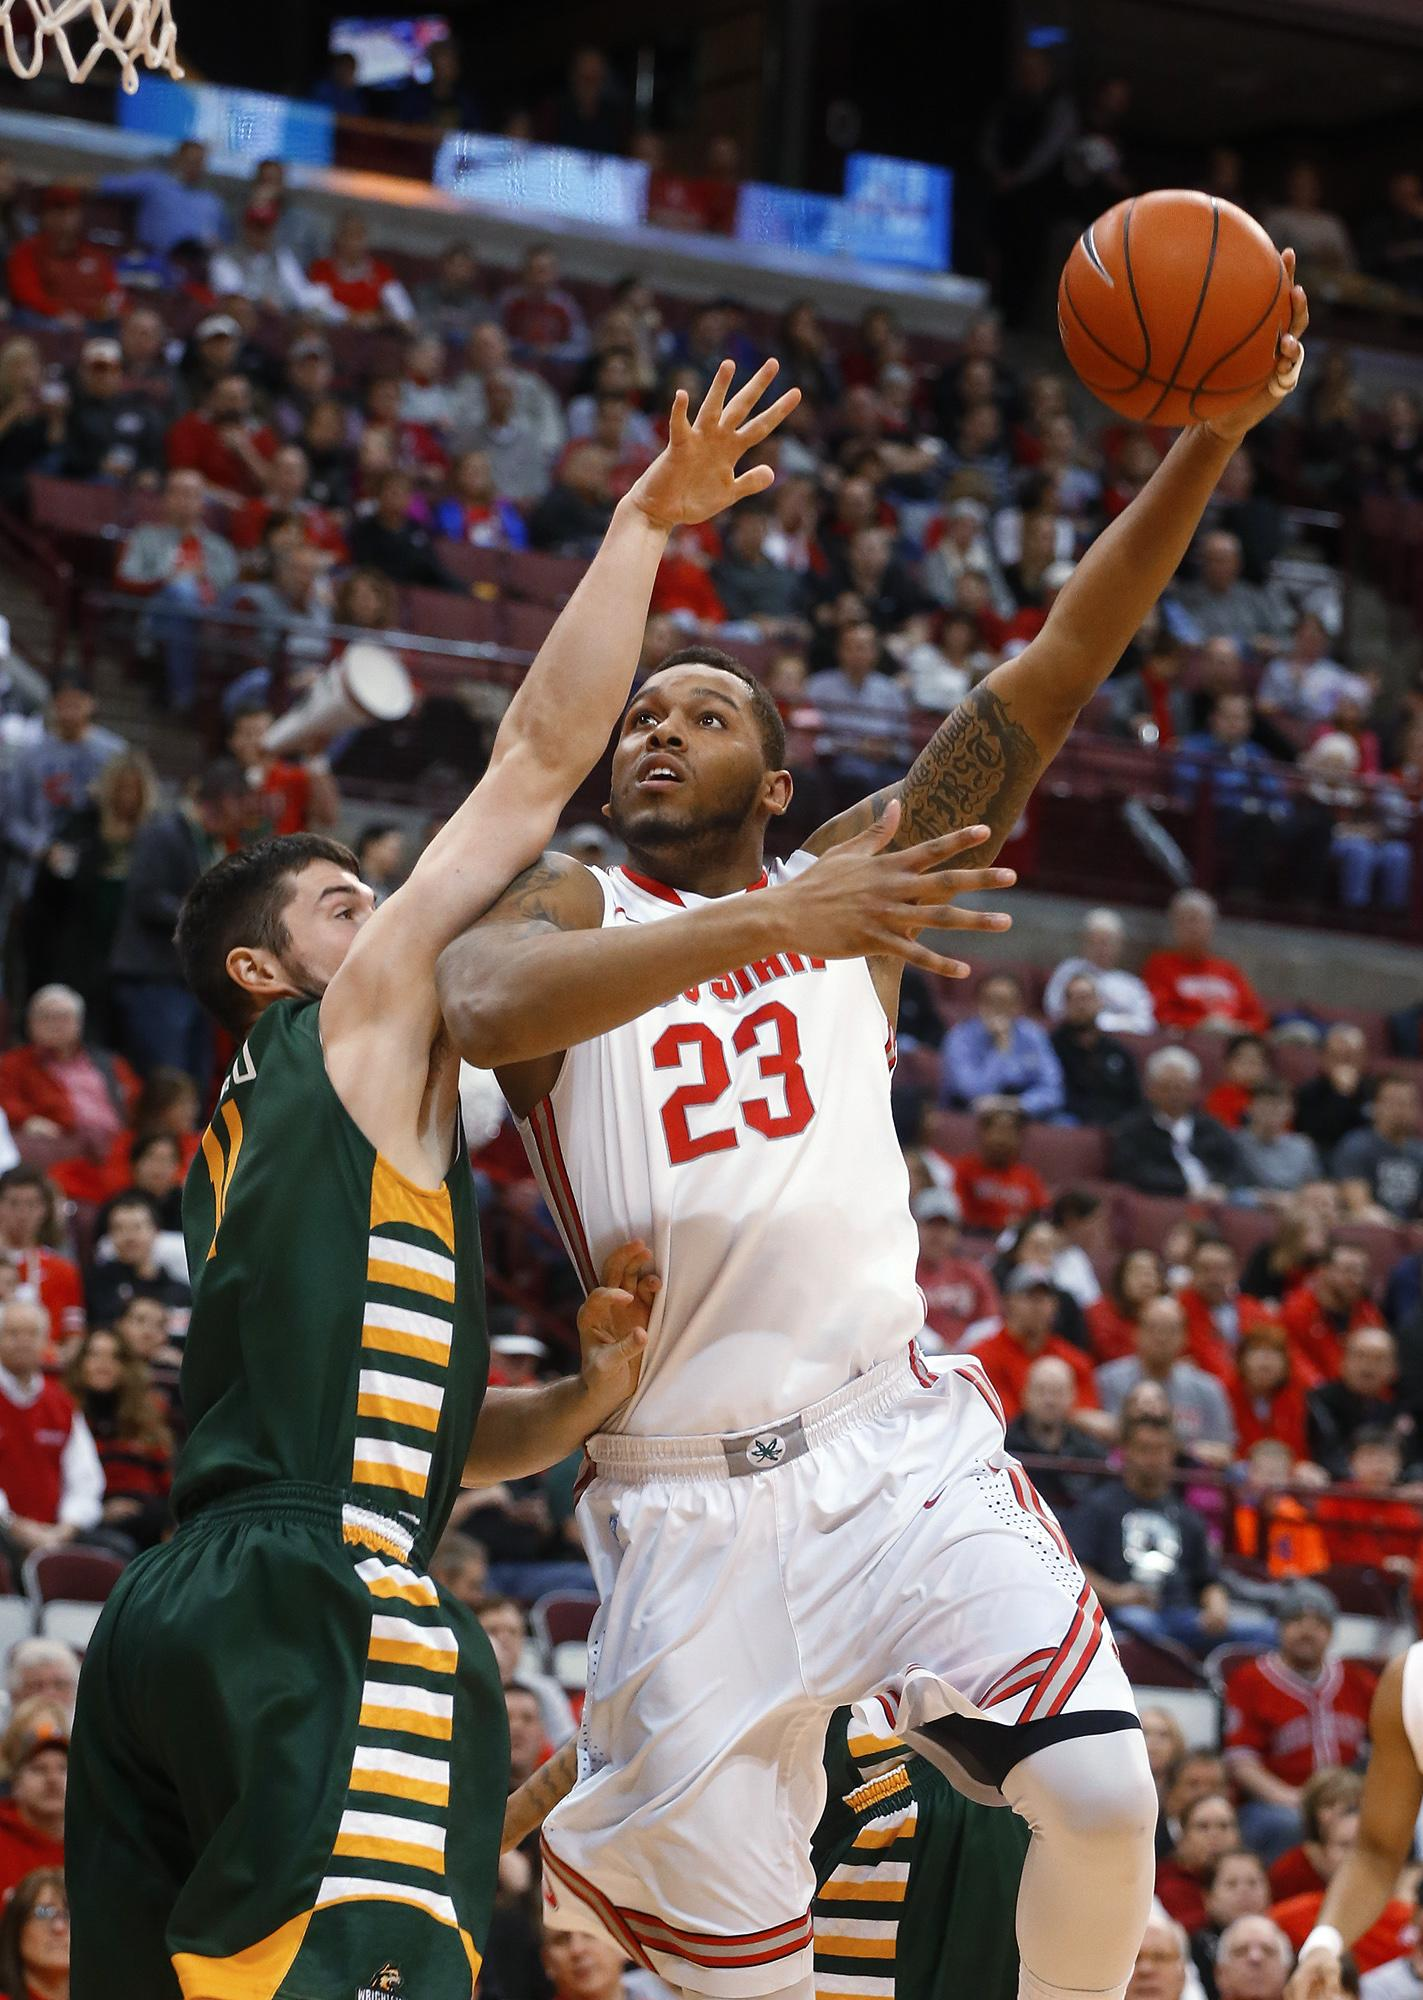 Russell has 24, leads No. 21 Ohio State to win